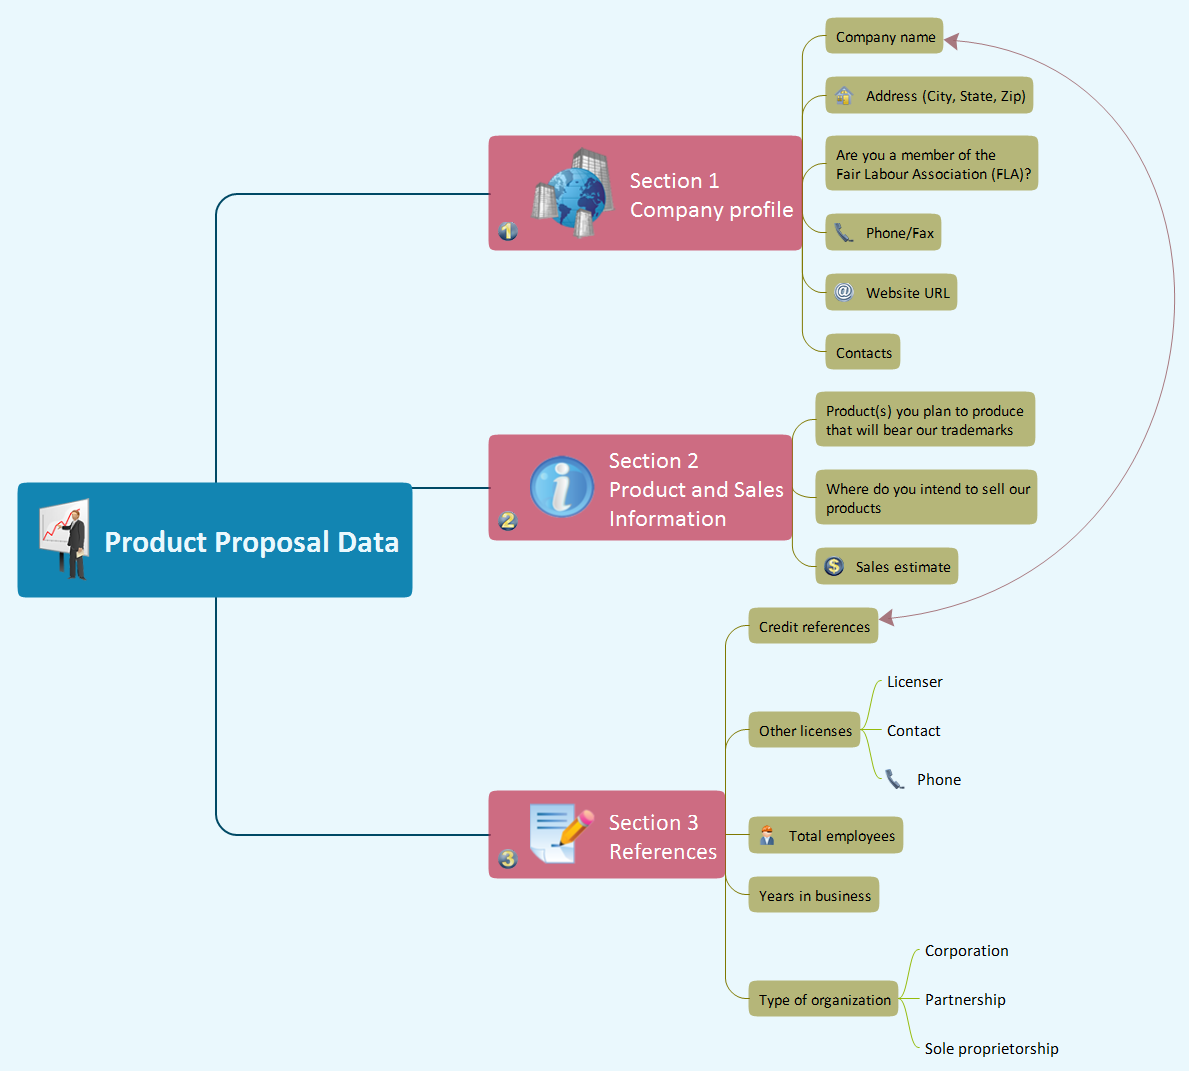 Evernote Exchange. Mindmap - Product proposal data